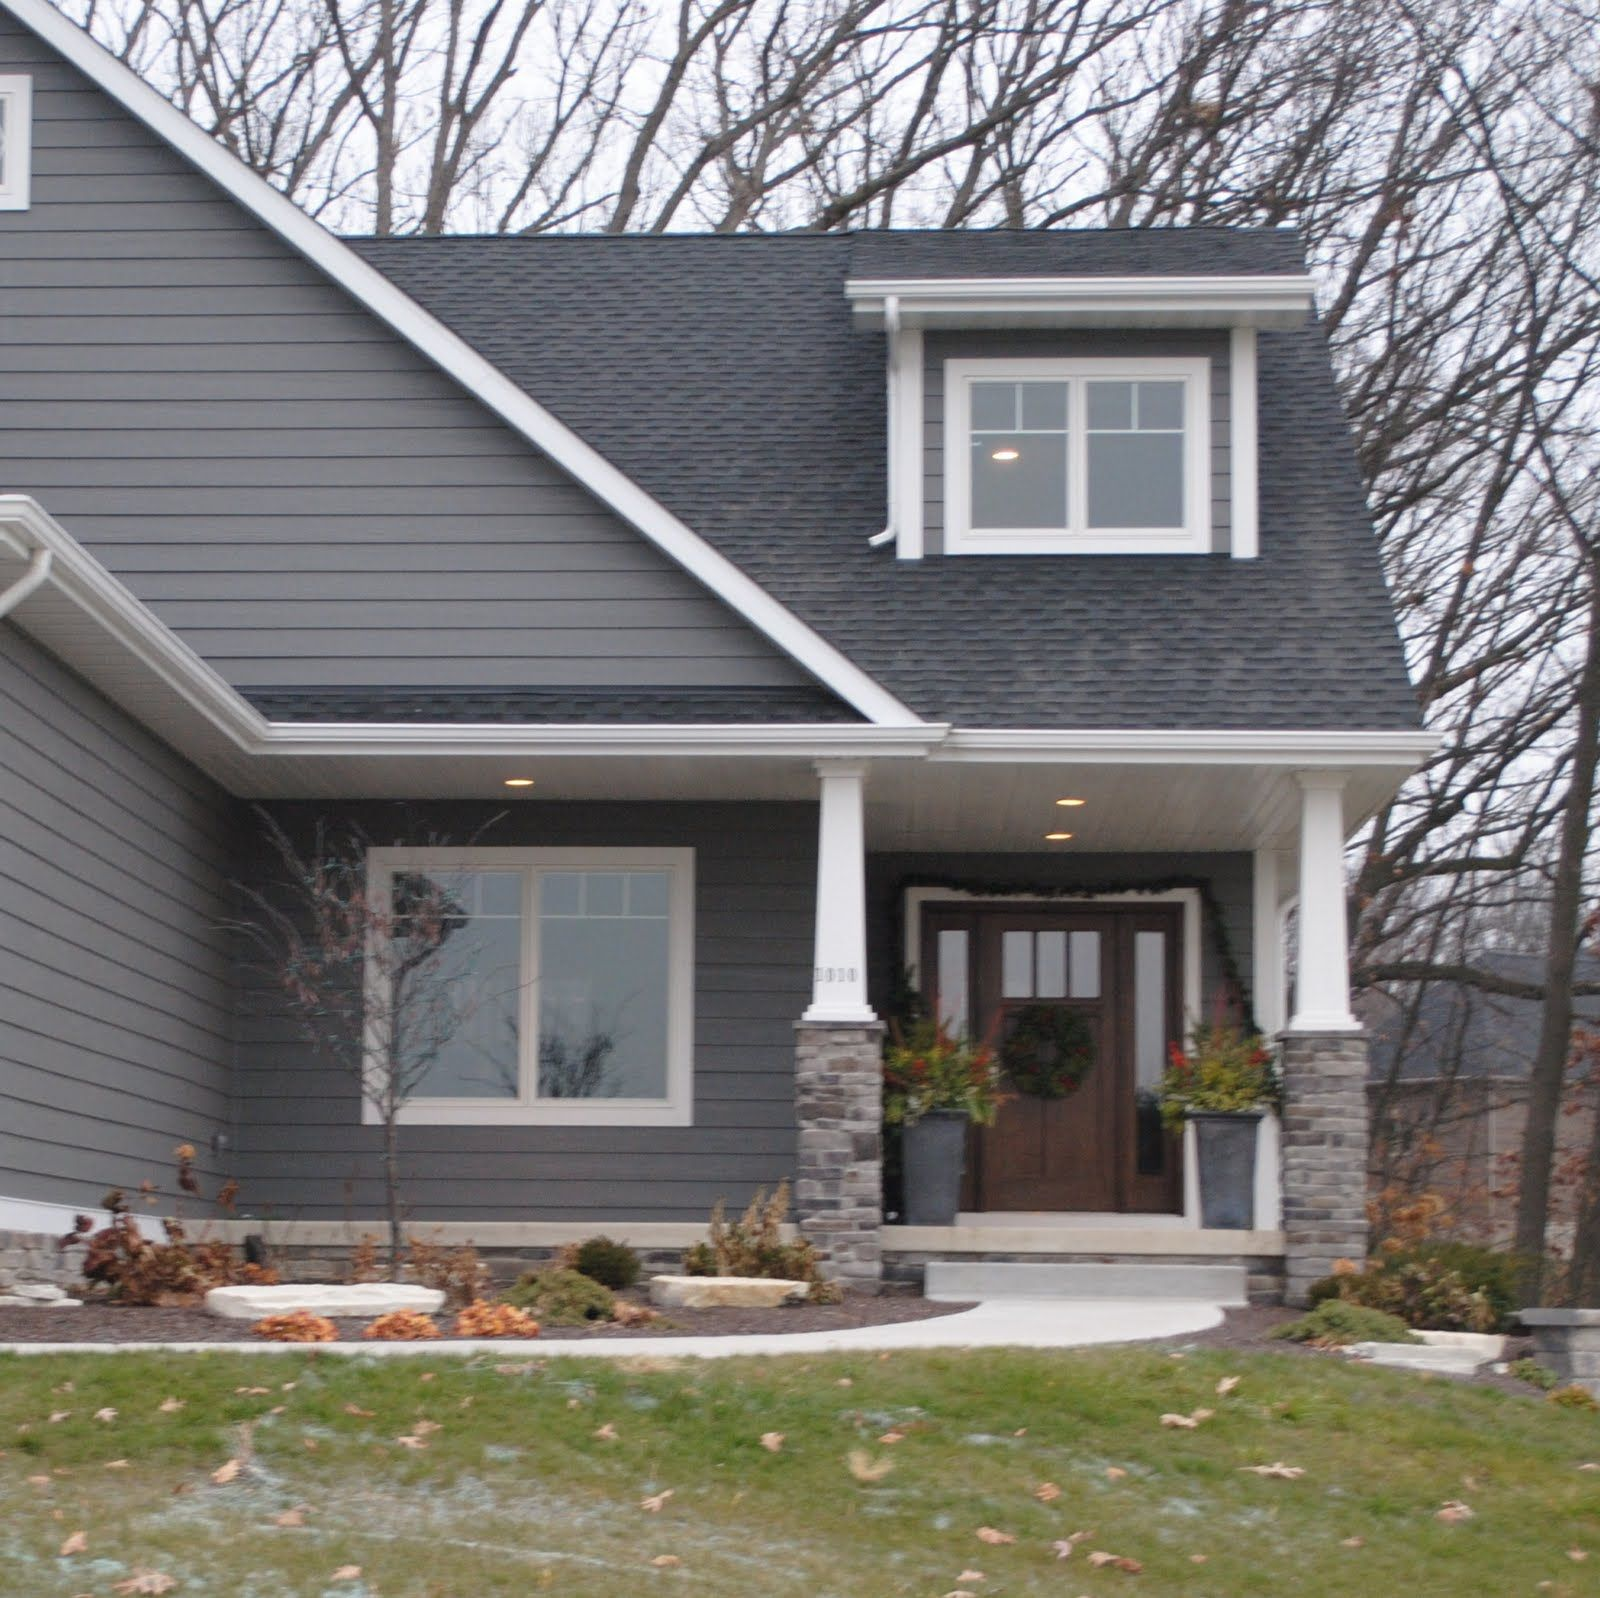 Dark Gray Vinyl Siding And White Trim Houses Here Is Our Inspirational Color Combo Photo Exterior House Colors House Siding Exterior Paint Colors For House